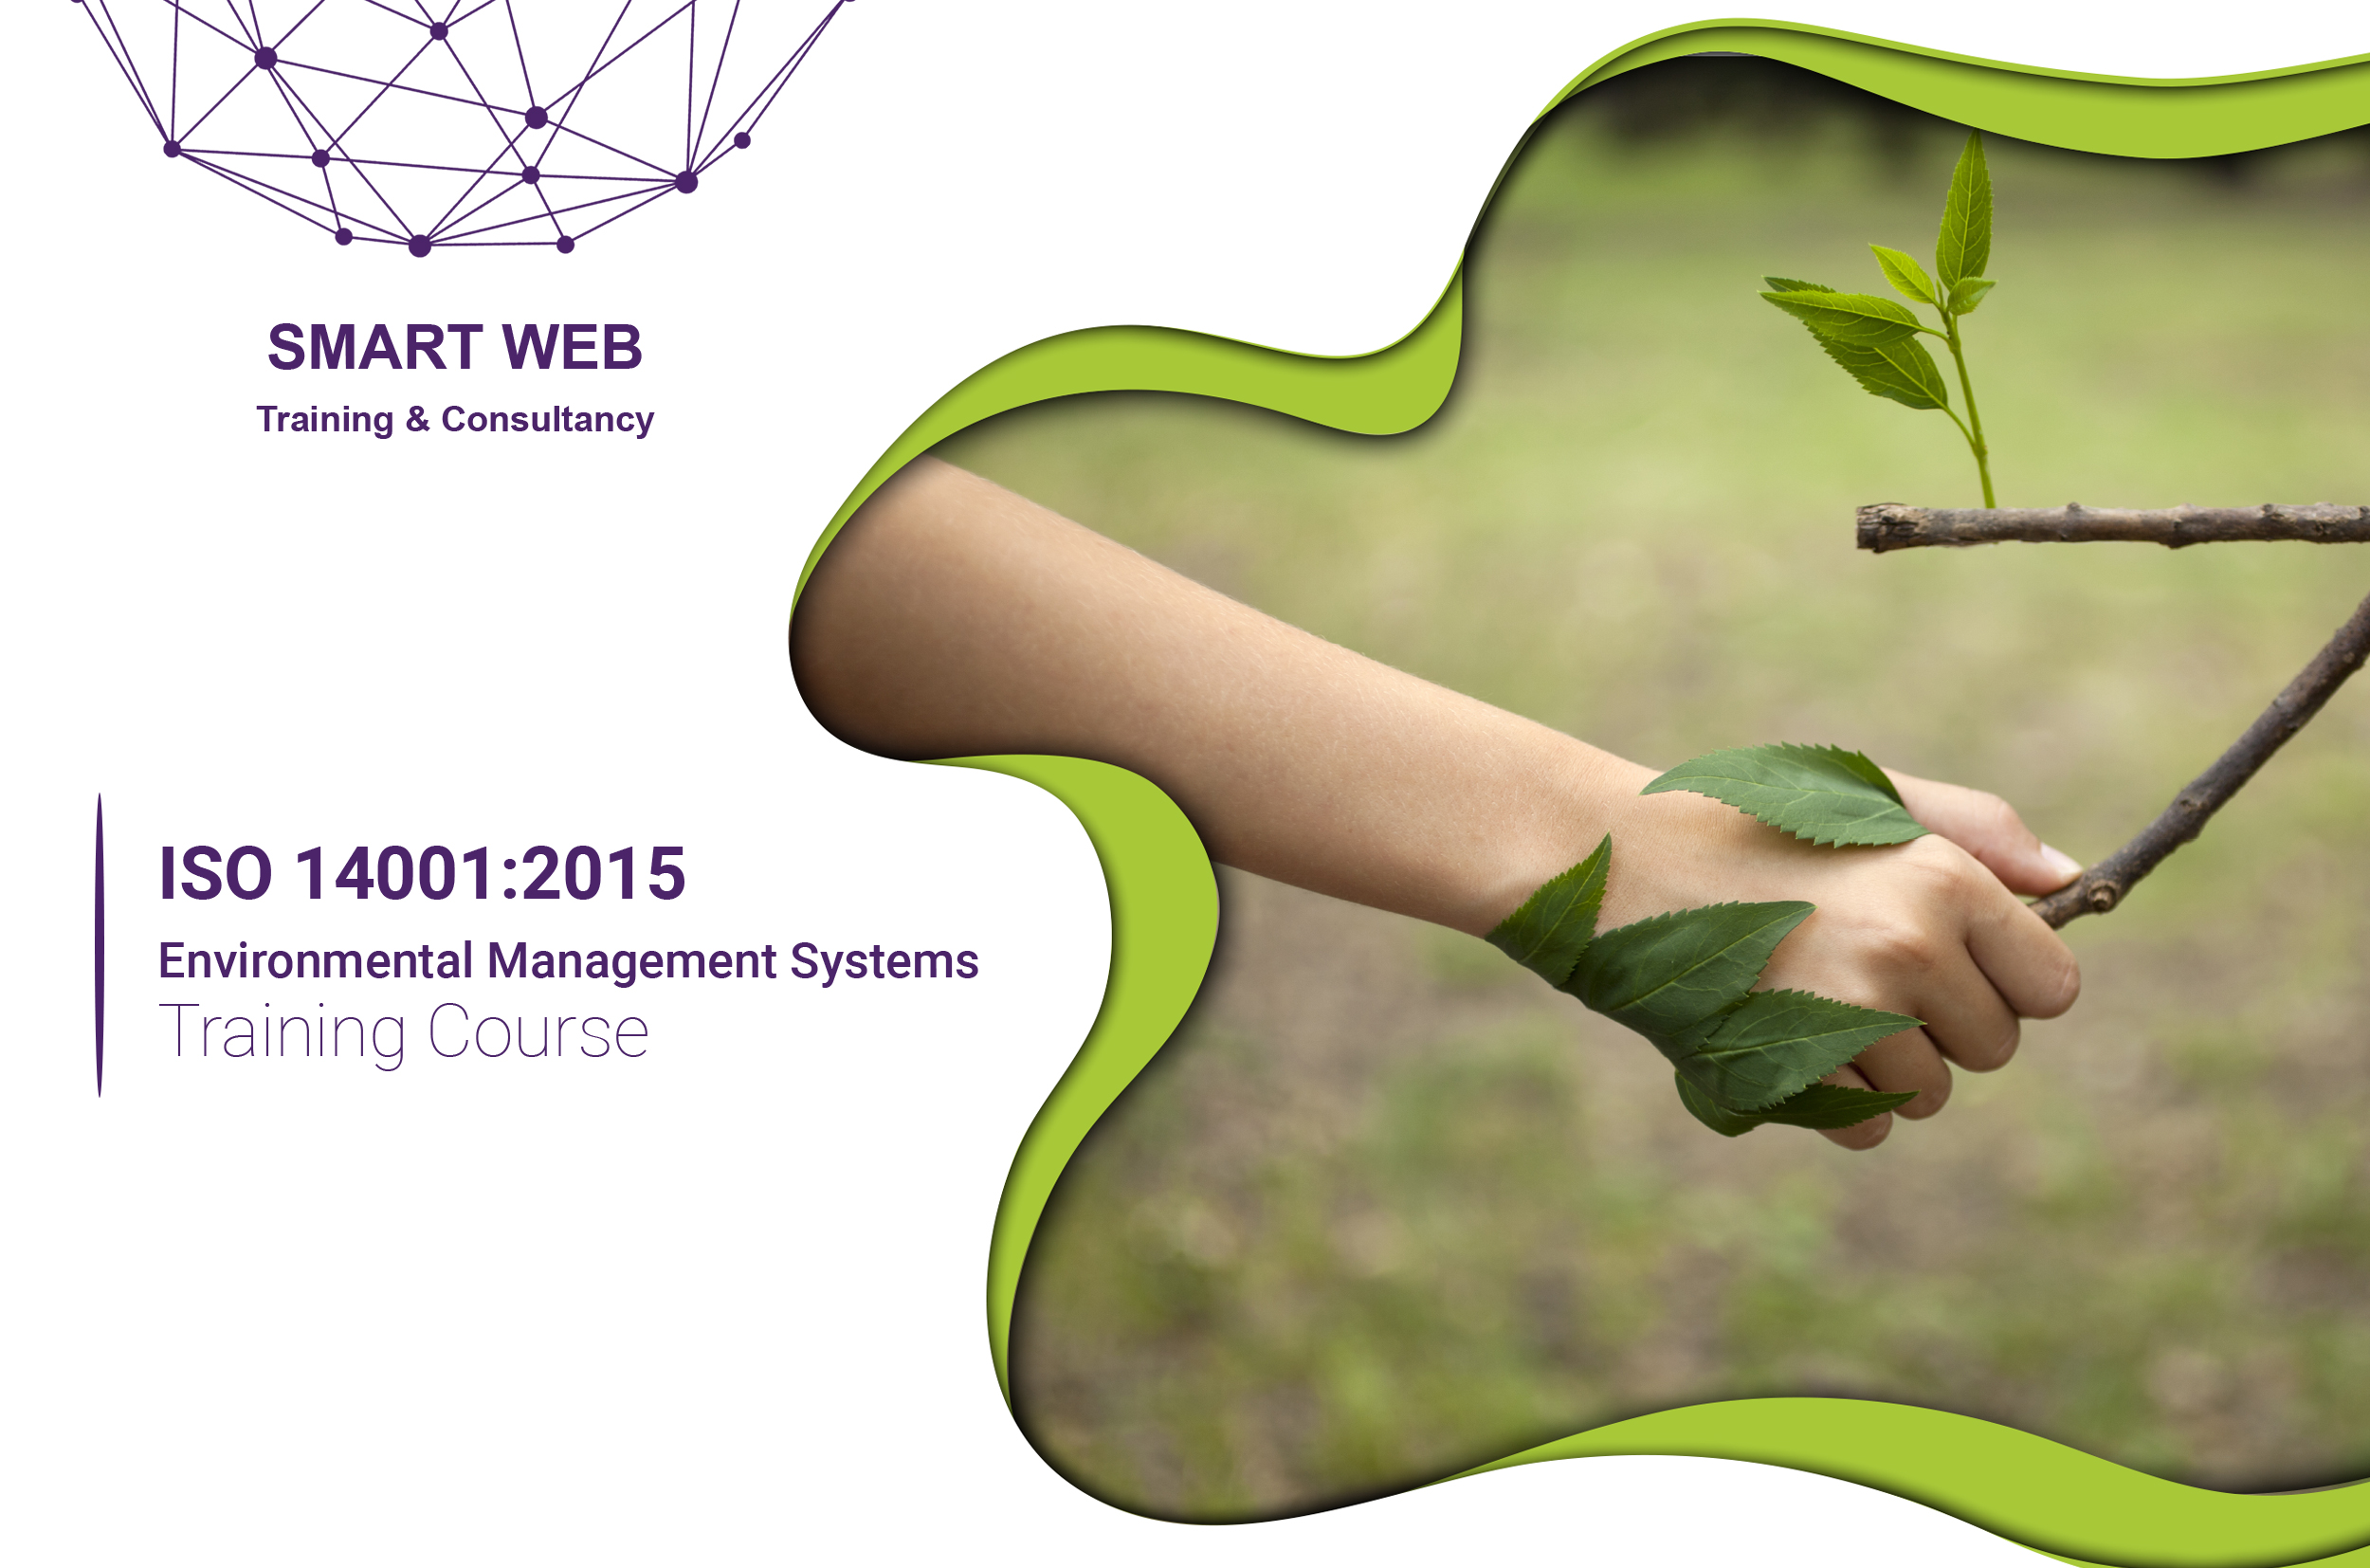 ISO 14001:2015 - Environmental Management Systems - Foundation Training Course